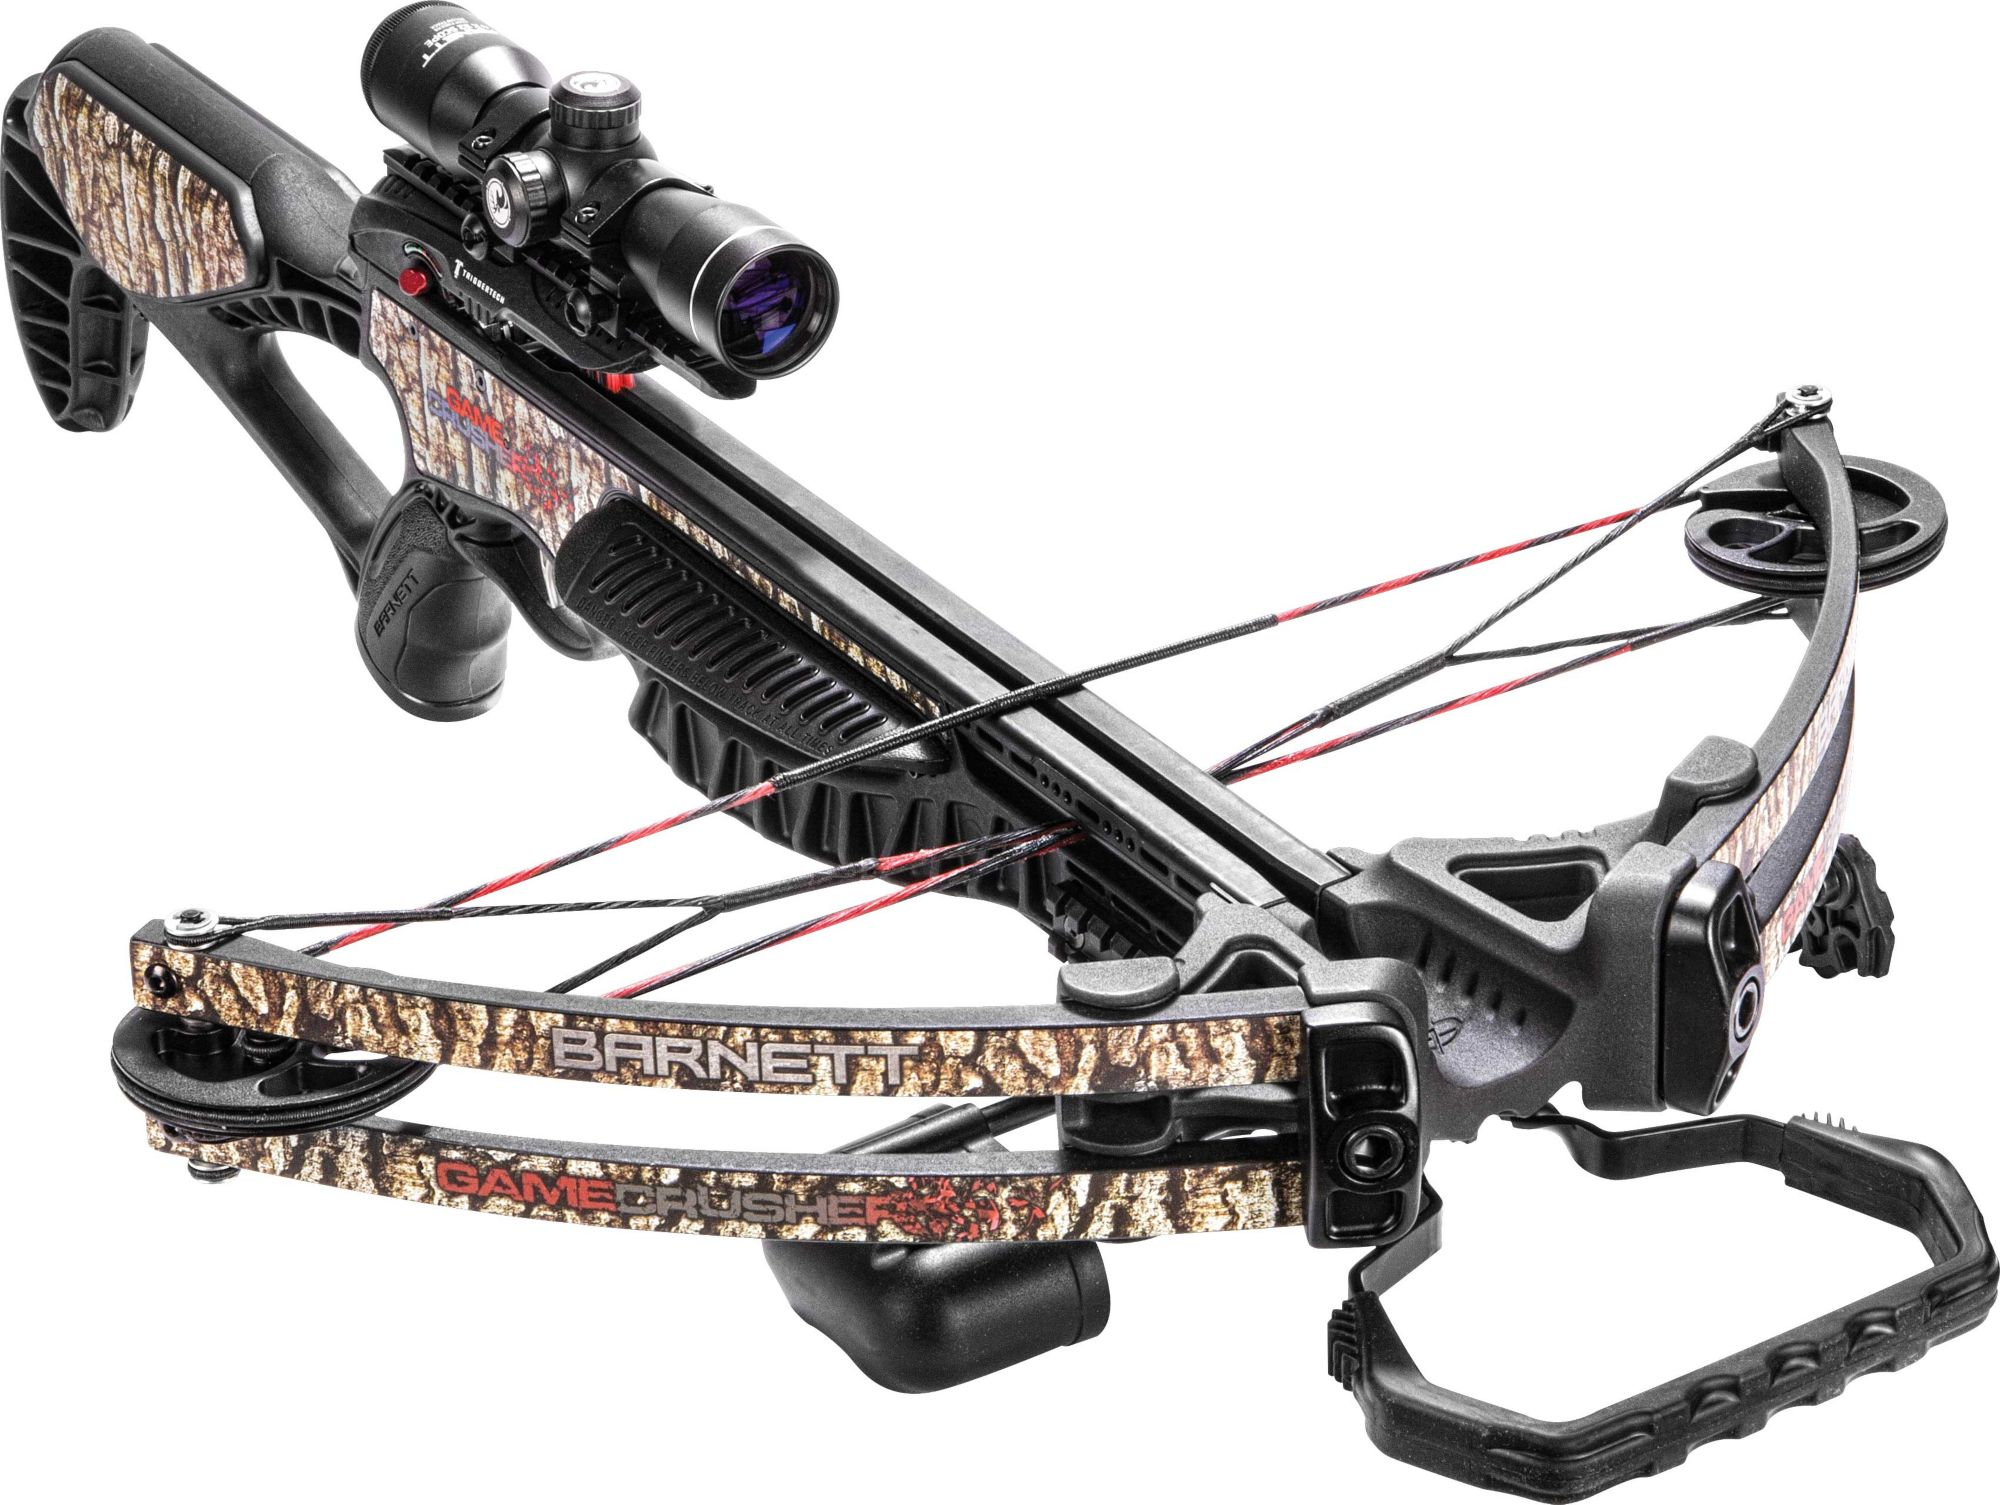 Barnett Gamecrusher Crossbow Package - 4x32 Multi-Reticle Scope, Size: Small thumbnail